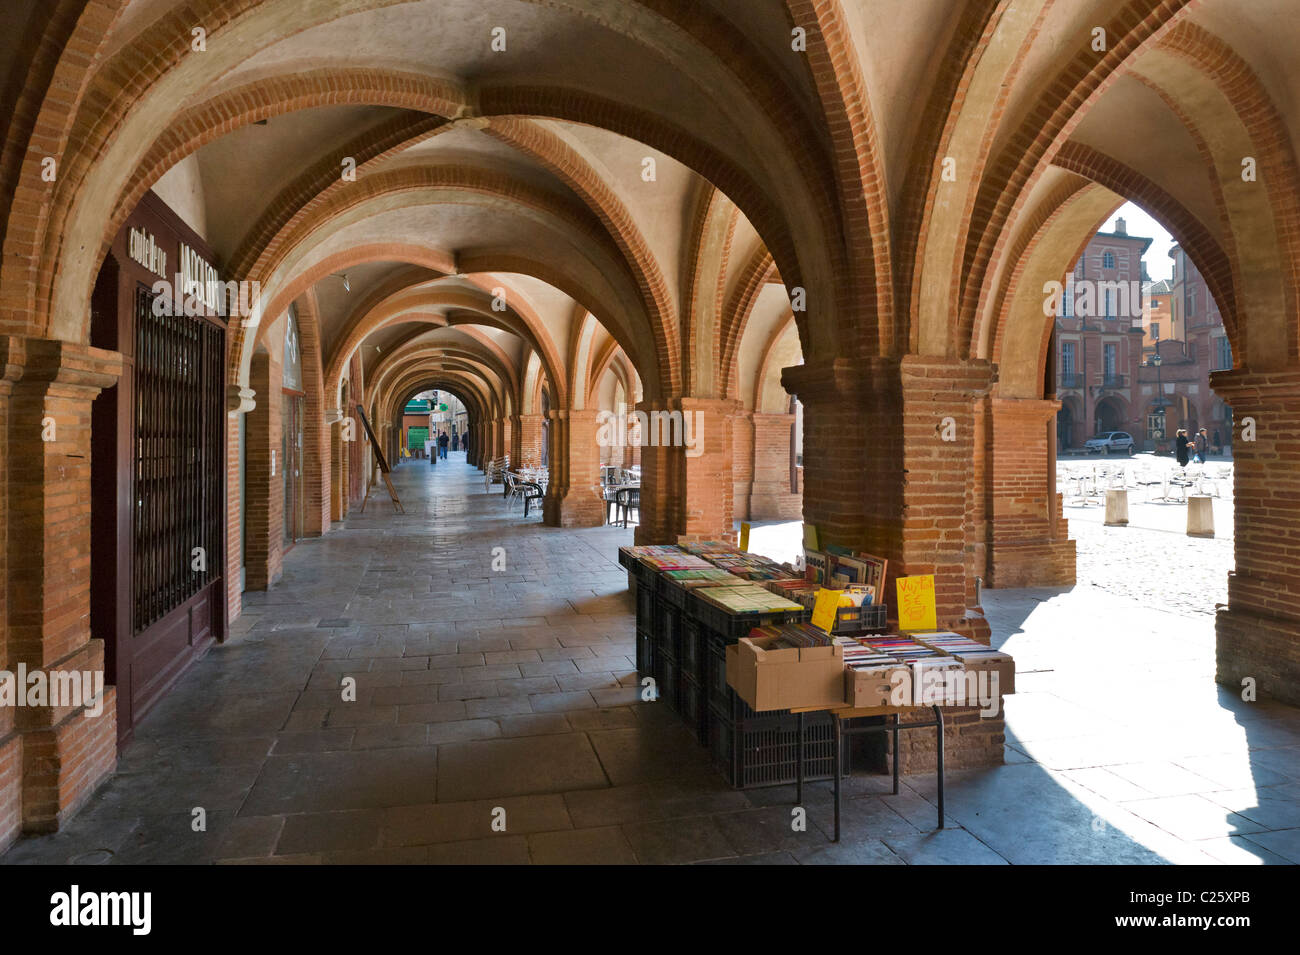 Vaulted arcade in the Place Nationale, Montauban, The Lot, France - Stock Image